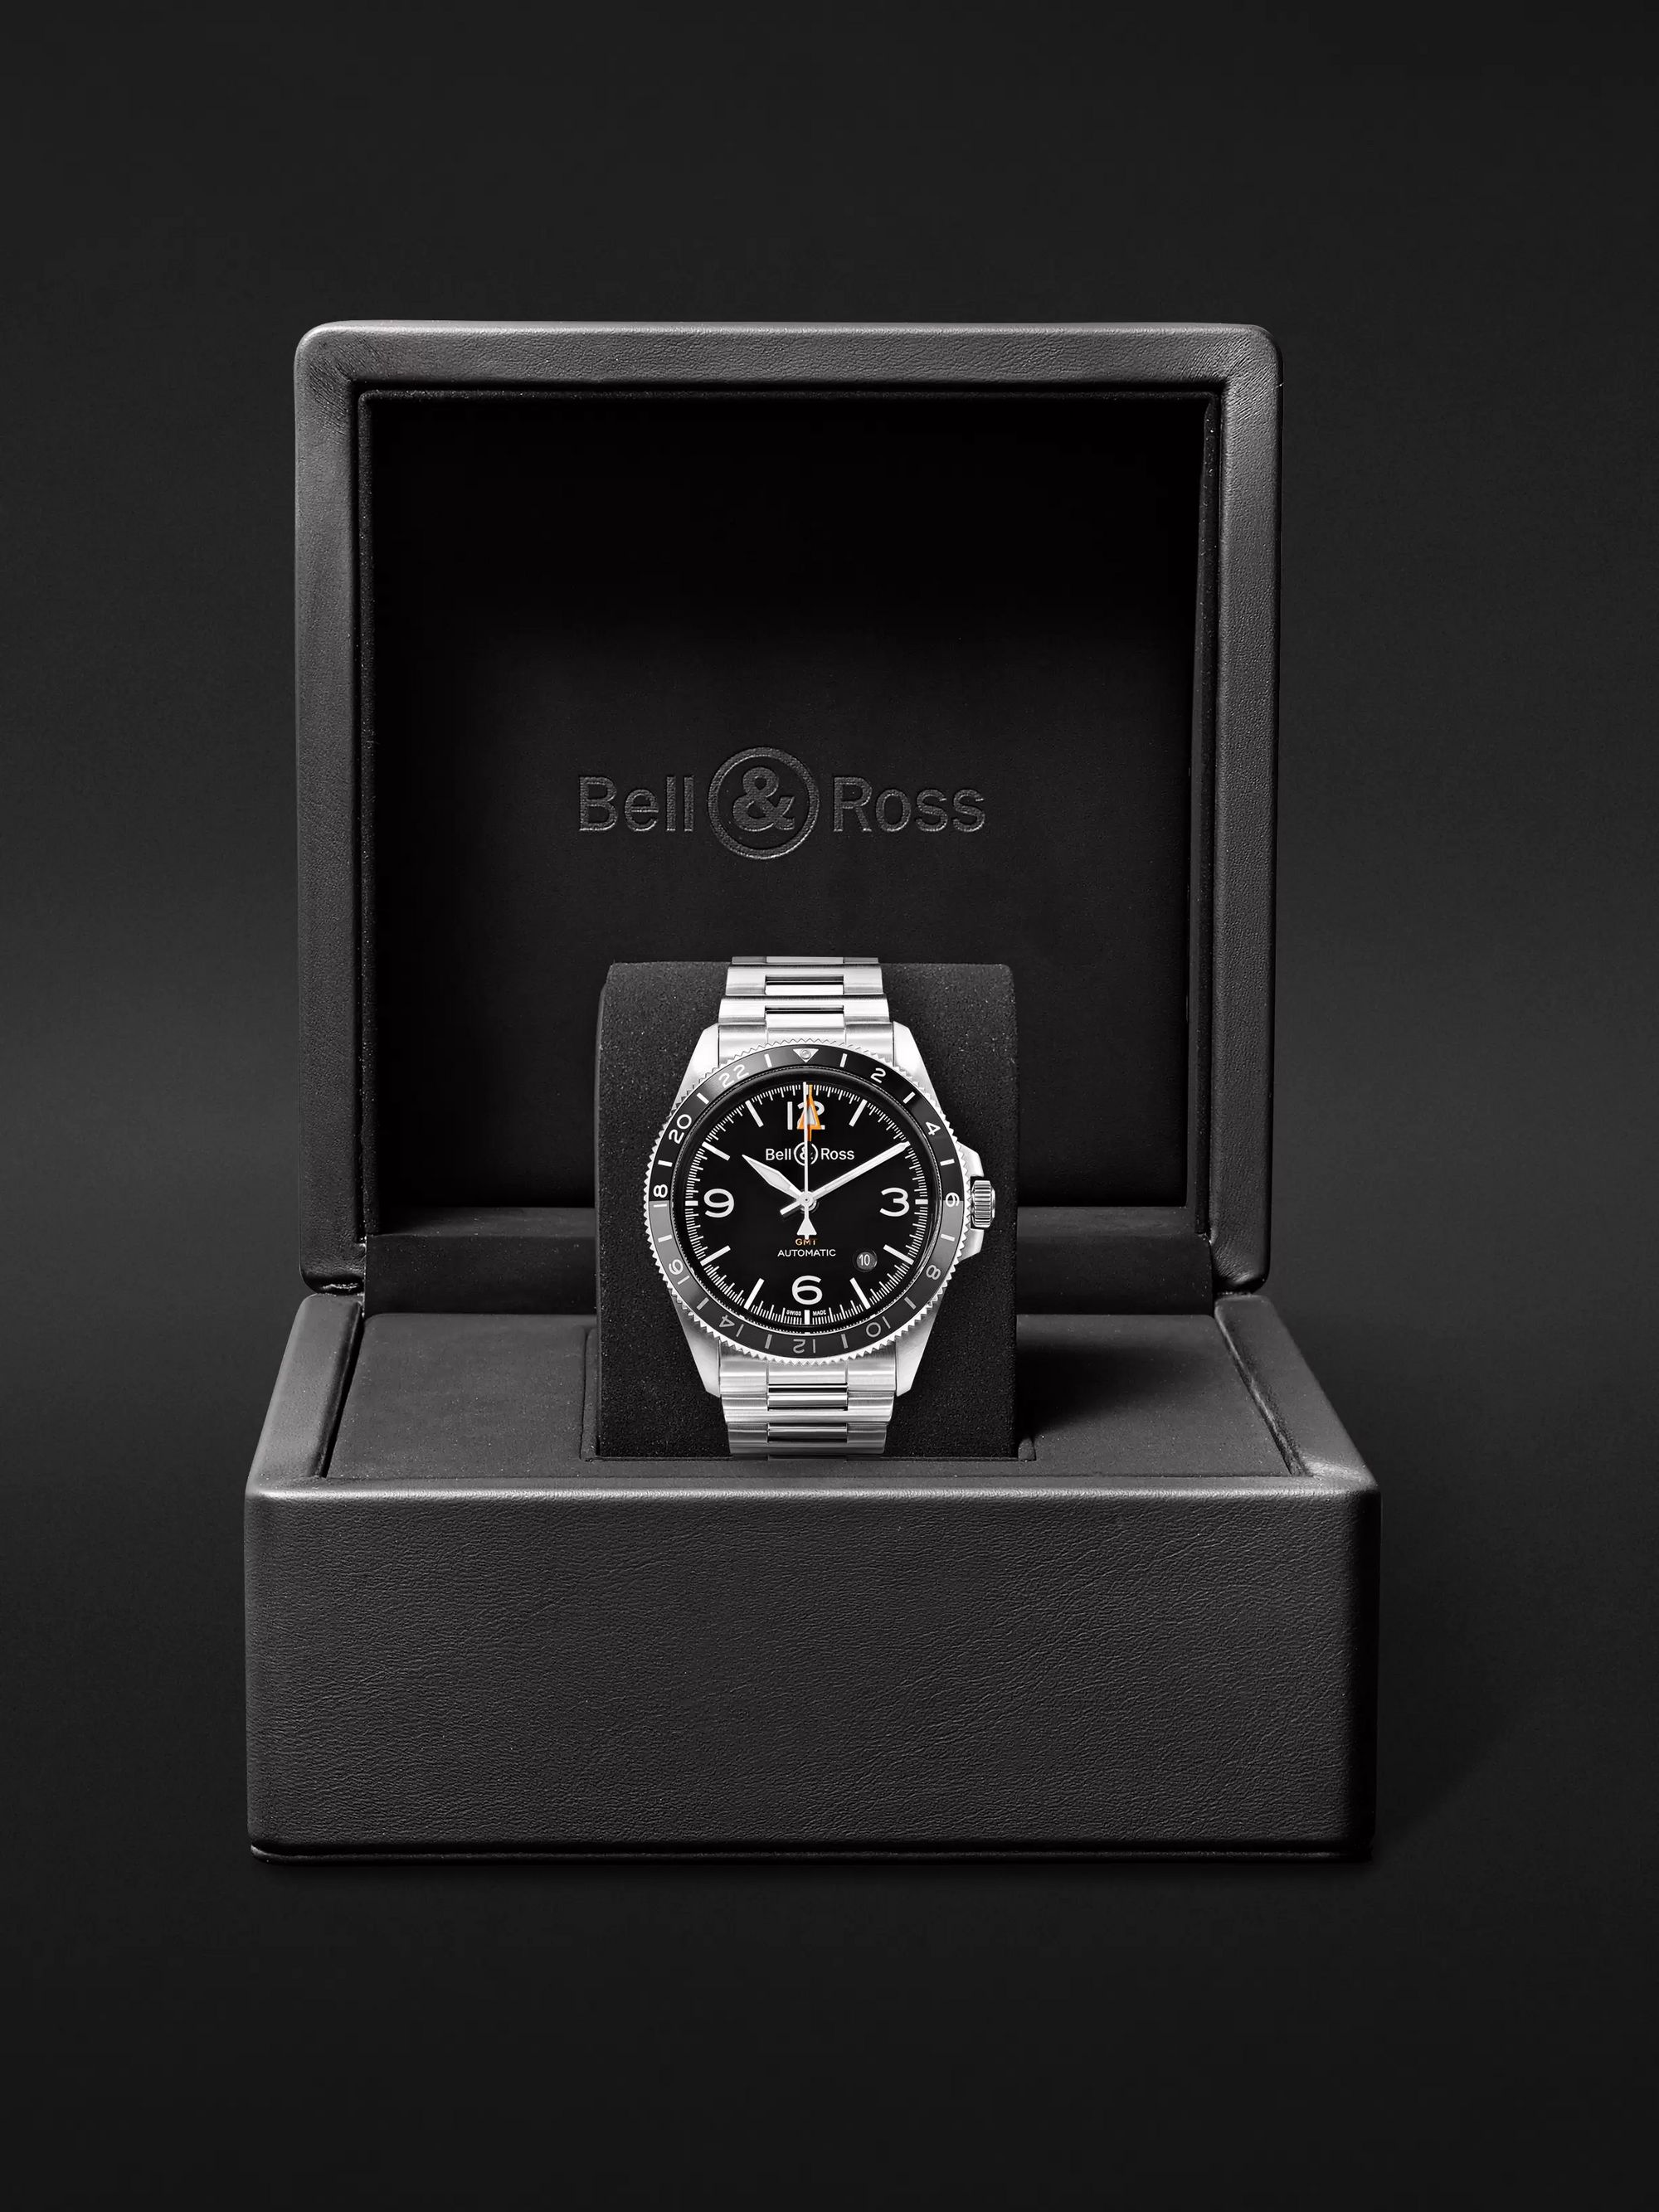 Bell & Ross BR V2-93 GMT Automatic 41mm Stainless Steel Watch, Ref. No. BRV293-BL-ST/SST